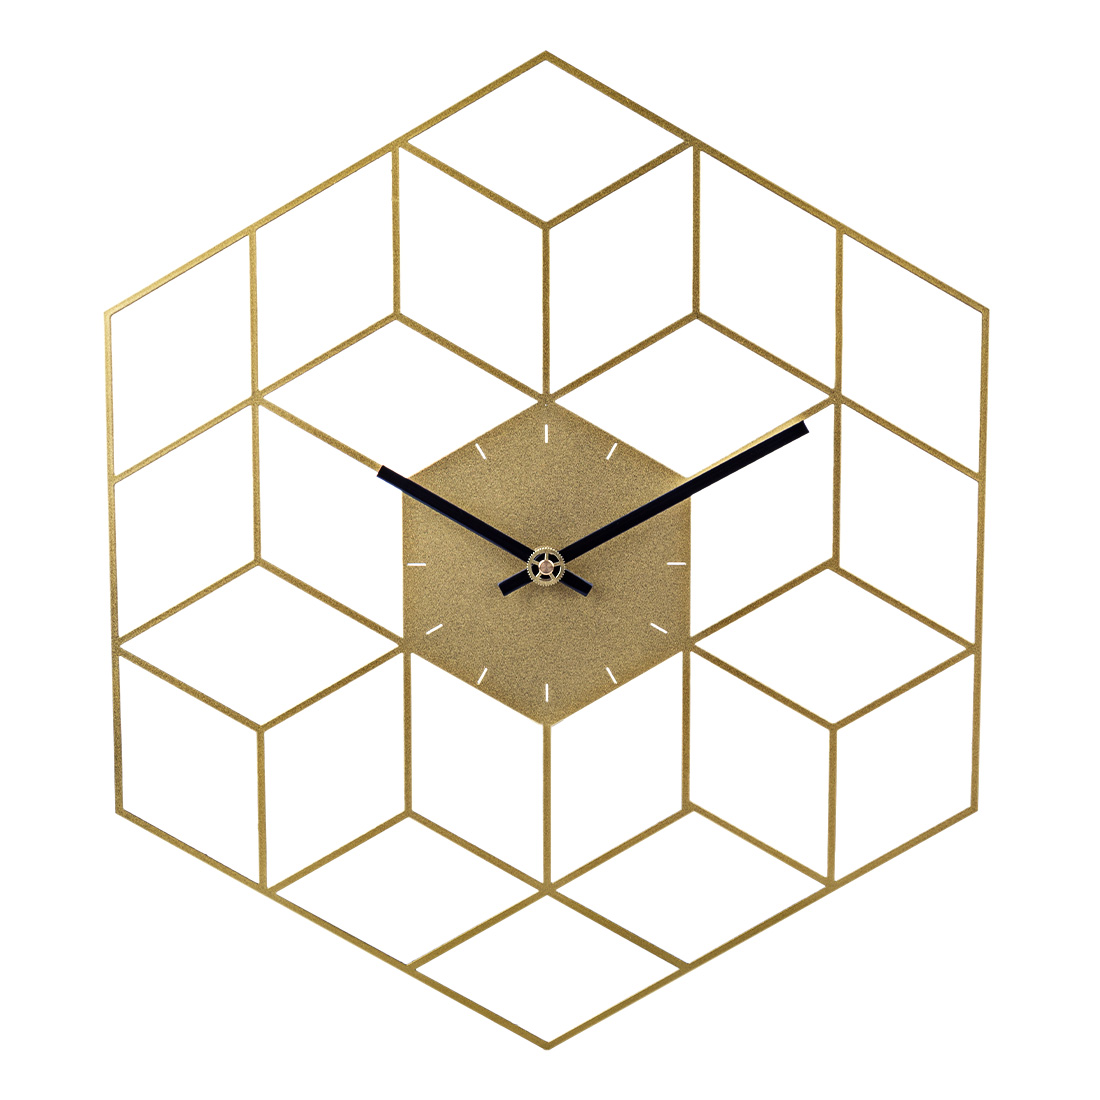 35 X 40cm Creative Iron Cube Wall Clock Timer Watch Battery Operated Silent Wall Clocks Home Decor Decoration - Scale Golden